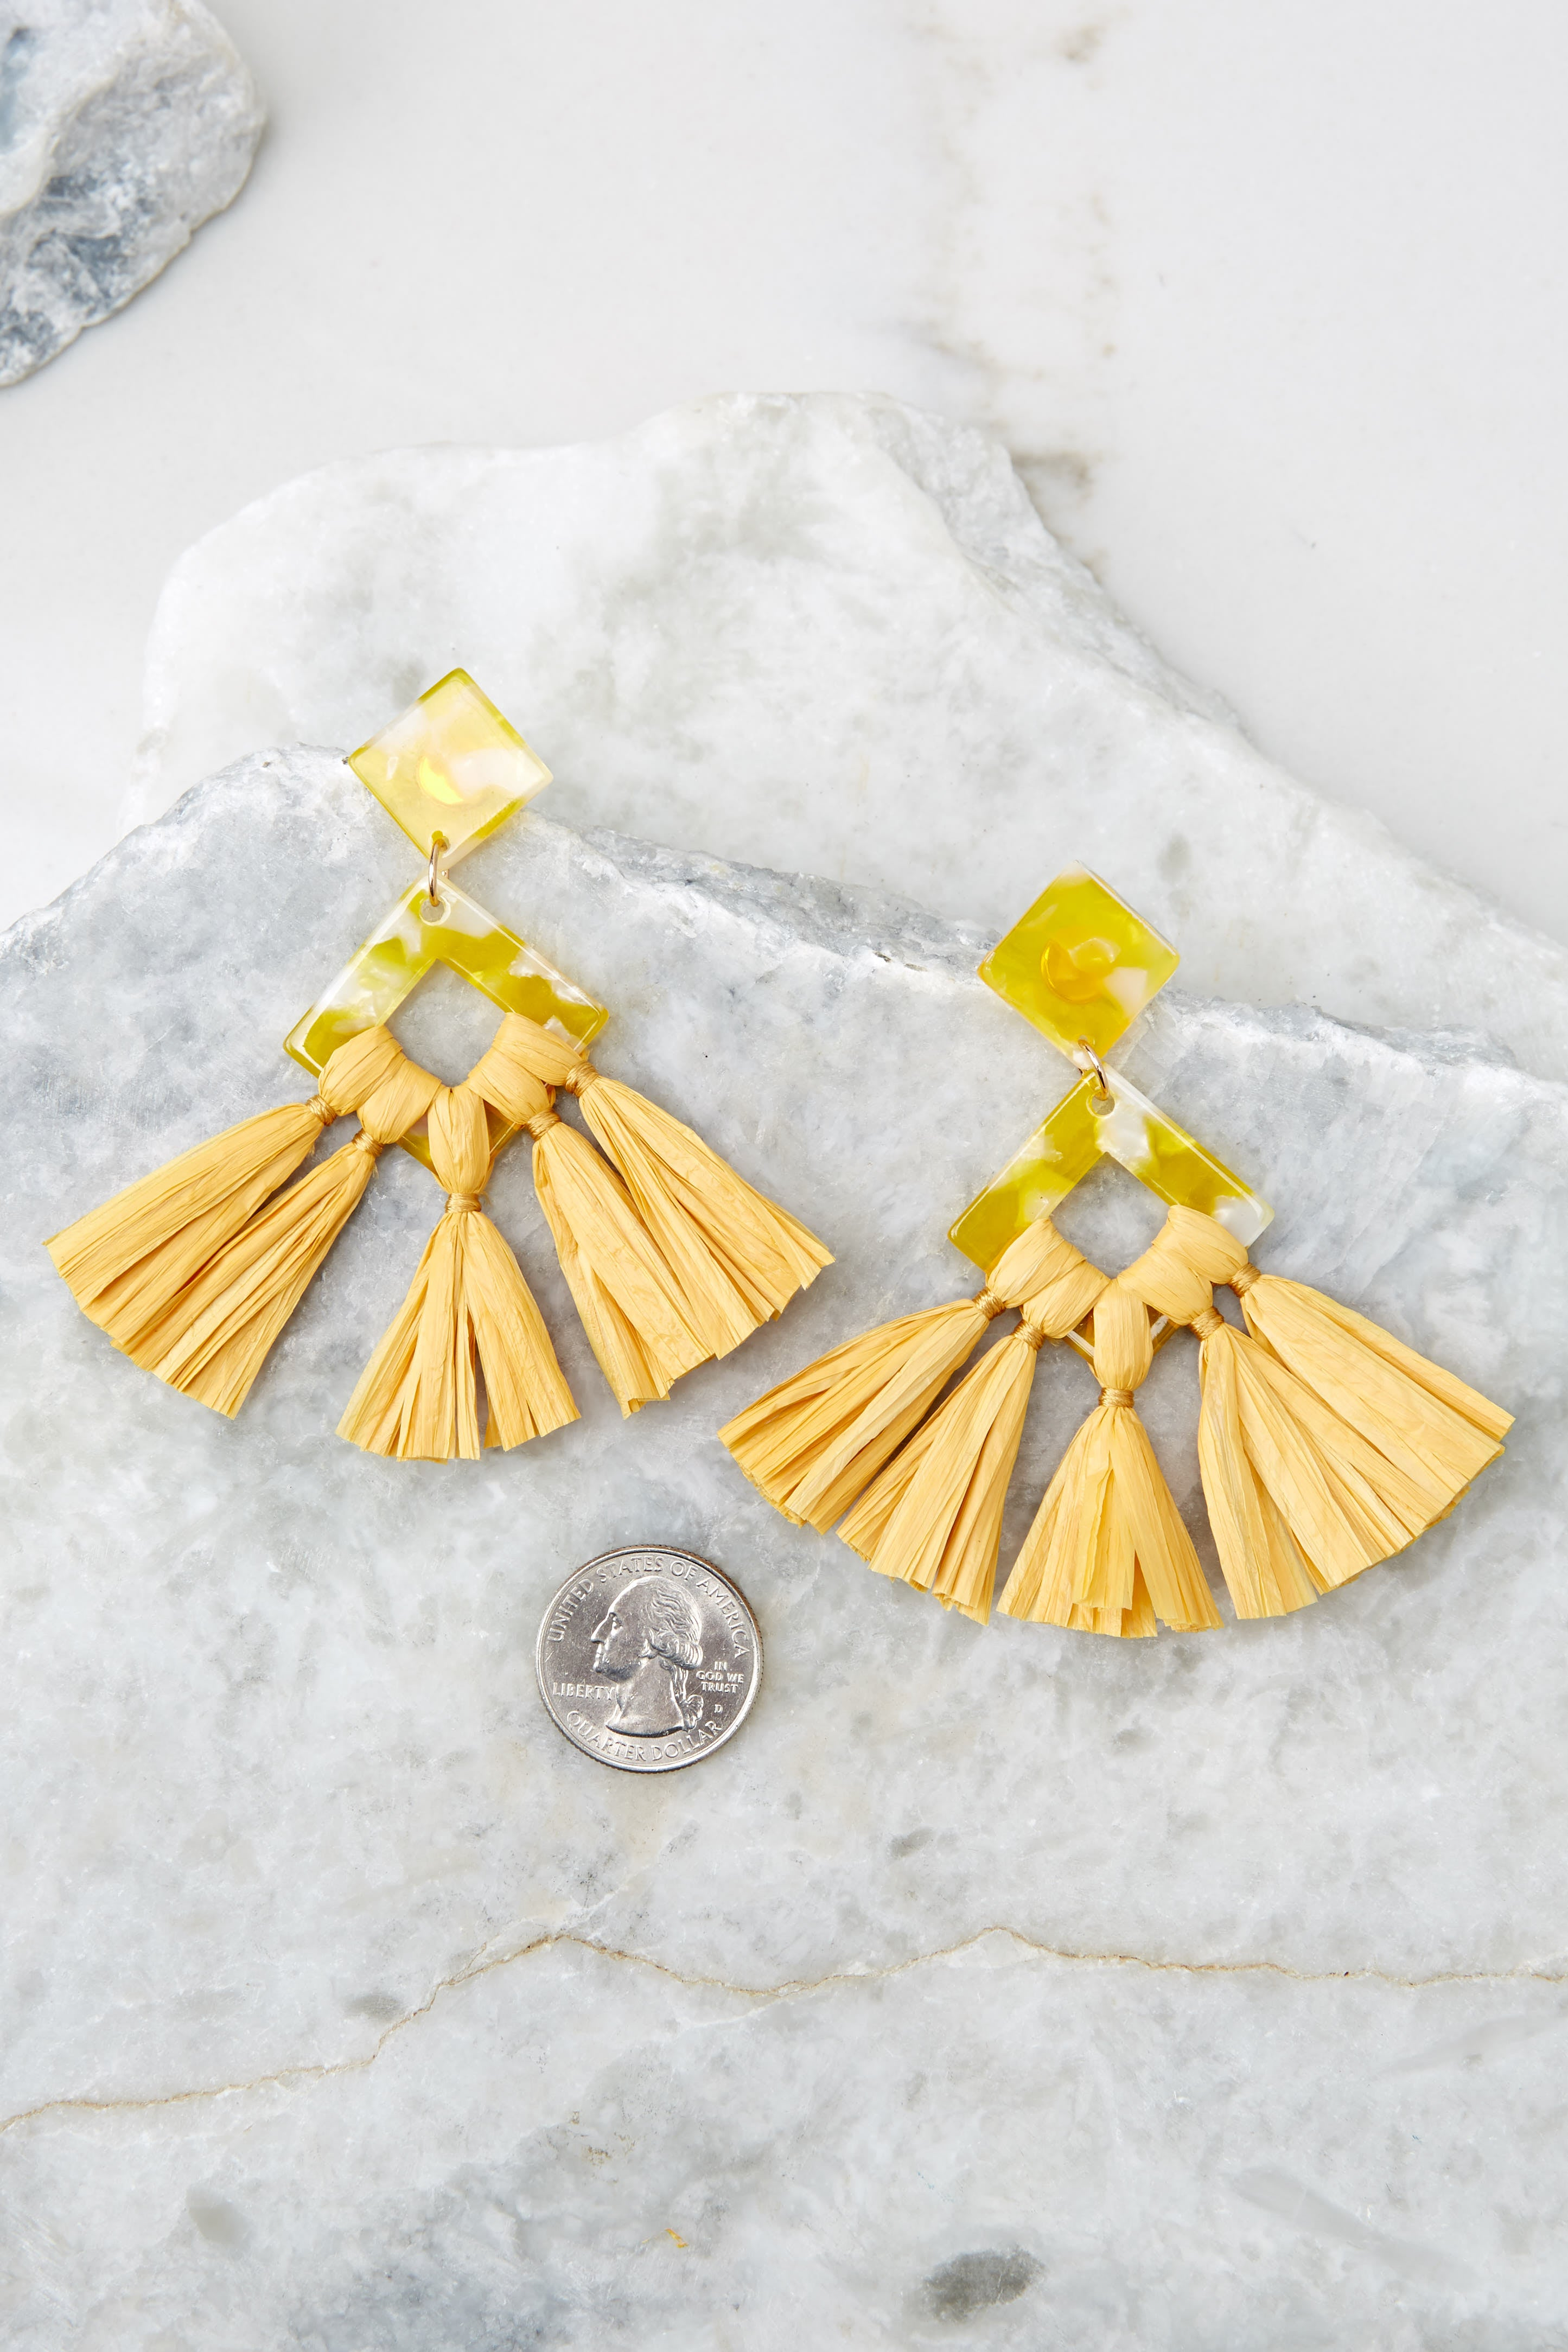 Theory Of Everything Yellow Earrings